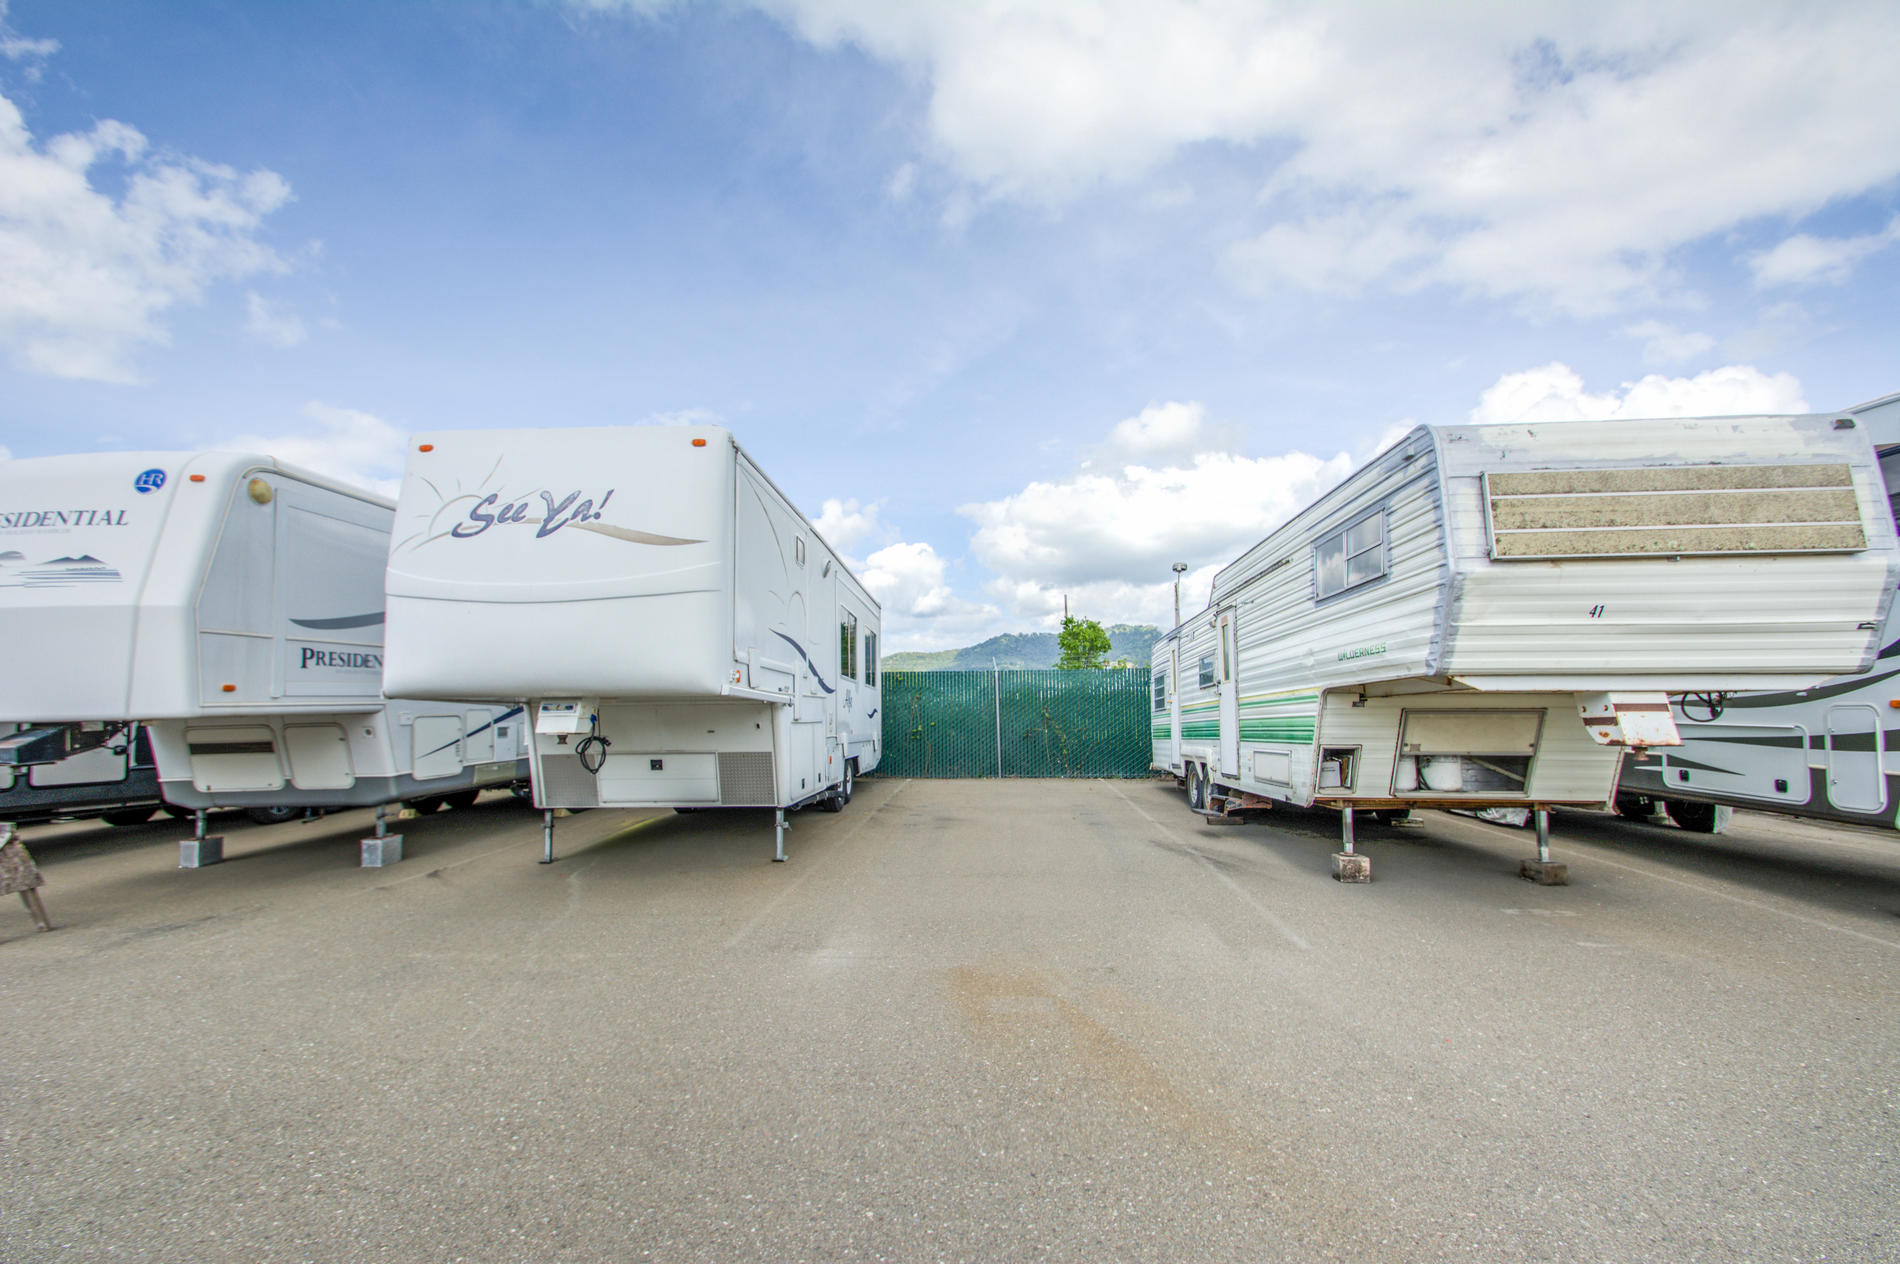 Parking for recreational vehicles and trailers. Empire Mini Storage Cloverdale (707)827-9289